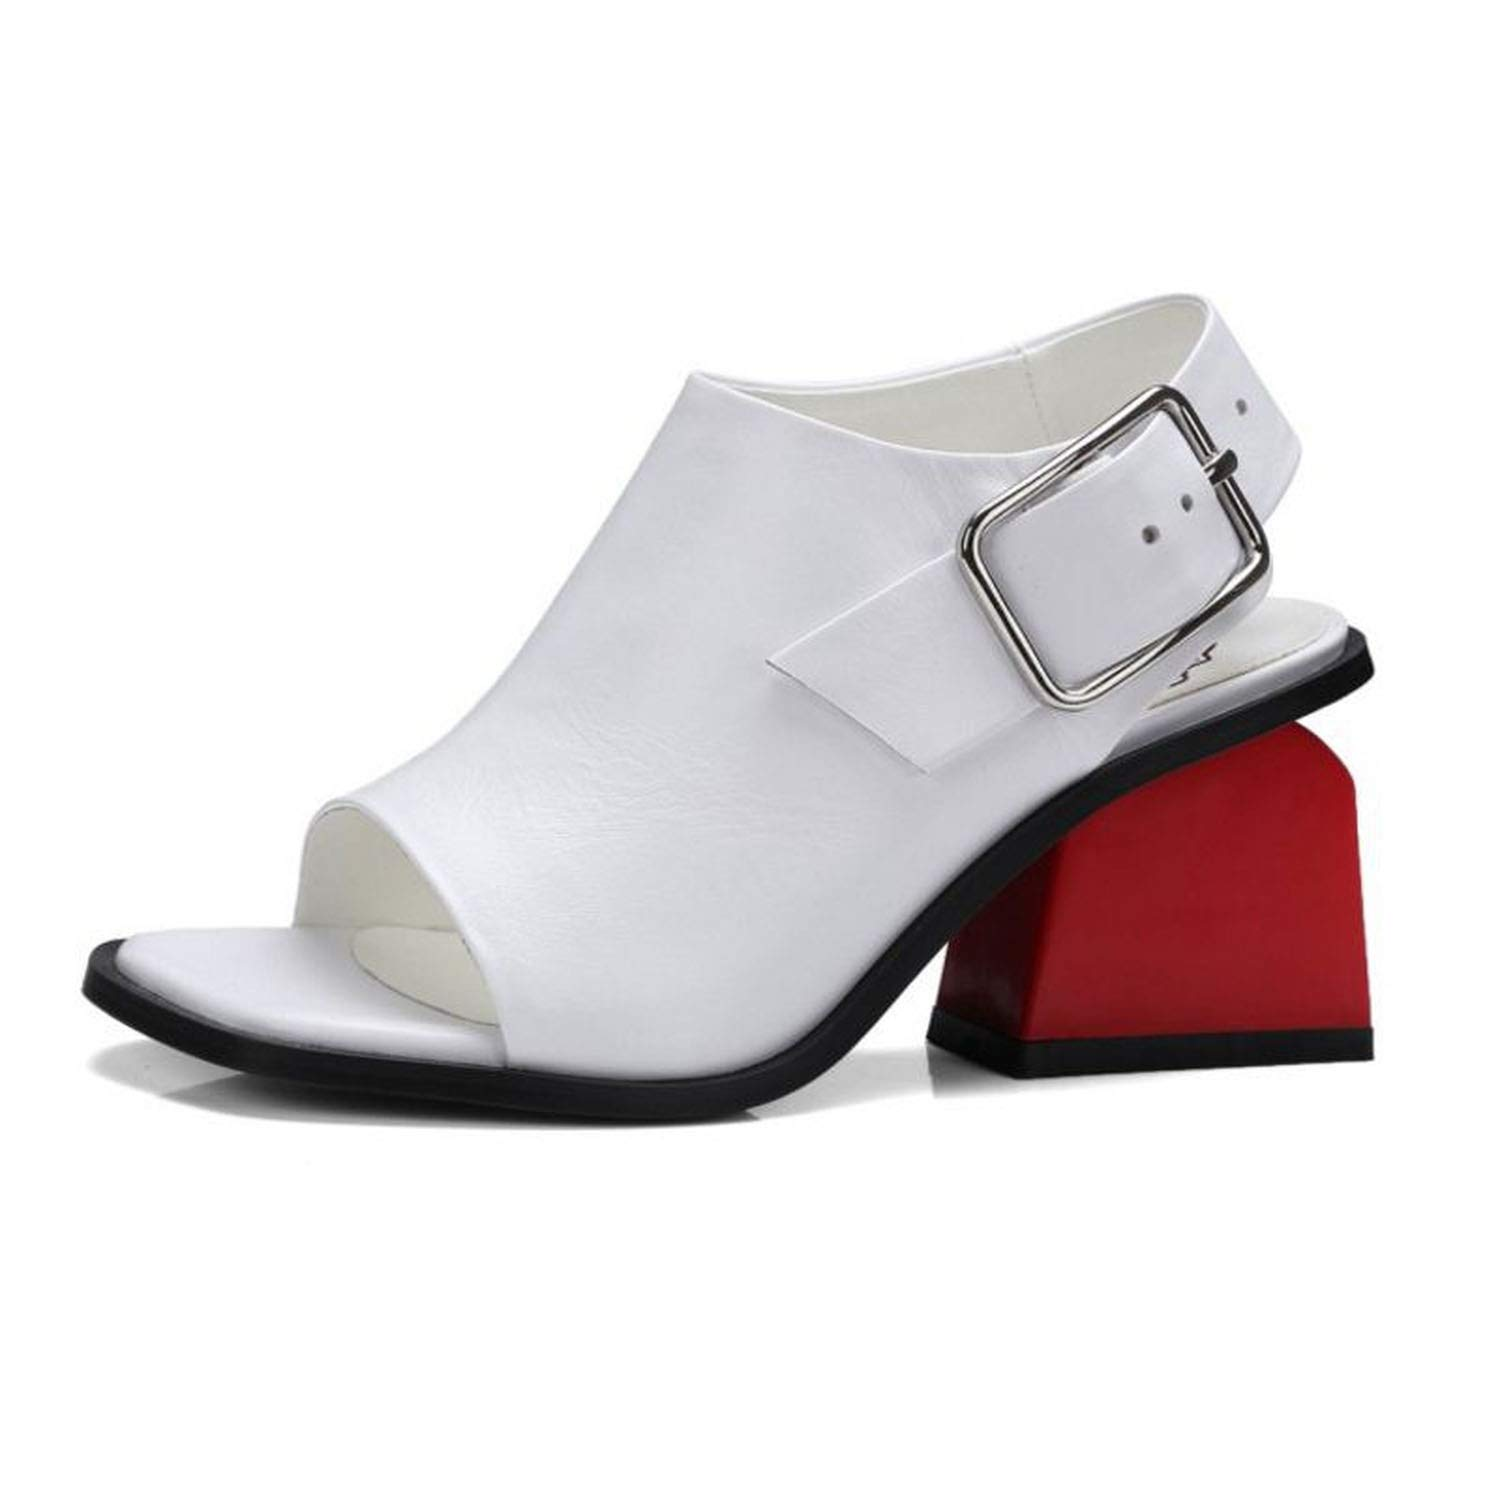 White Genuine Leather Square Peep Toe Ankle Straps Sandals High Heels Summer Causal shoes